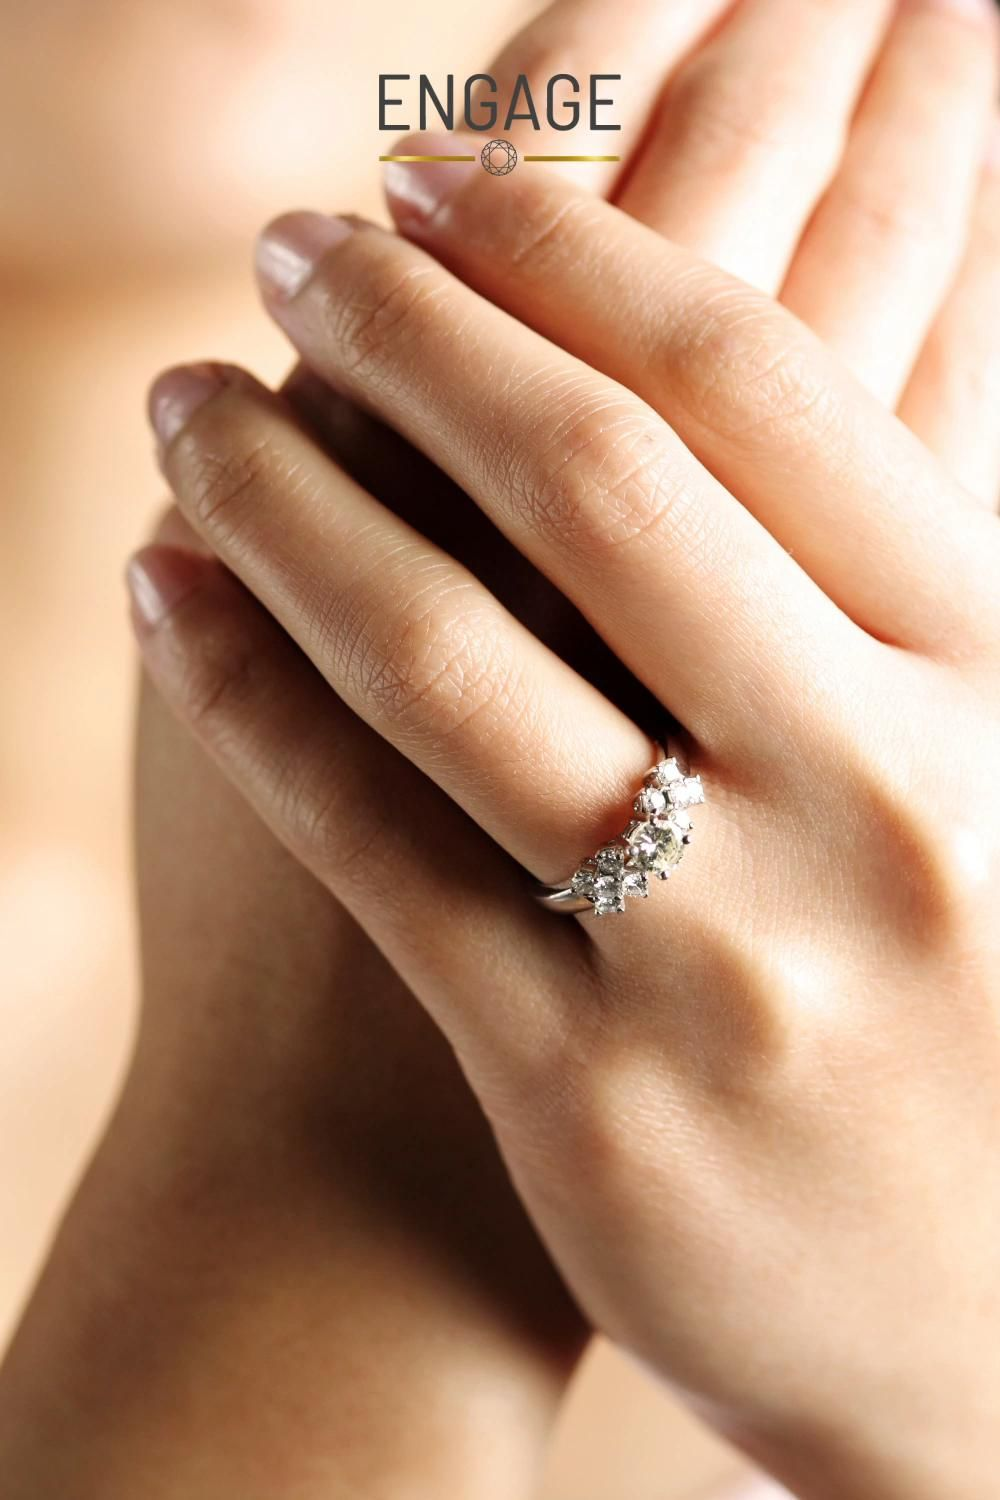 Design Custom Ring In A Few Clicks Video Wedding Ring Hand Engagement Rings Engagement